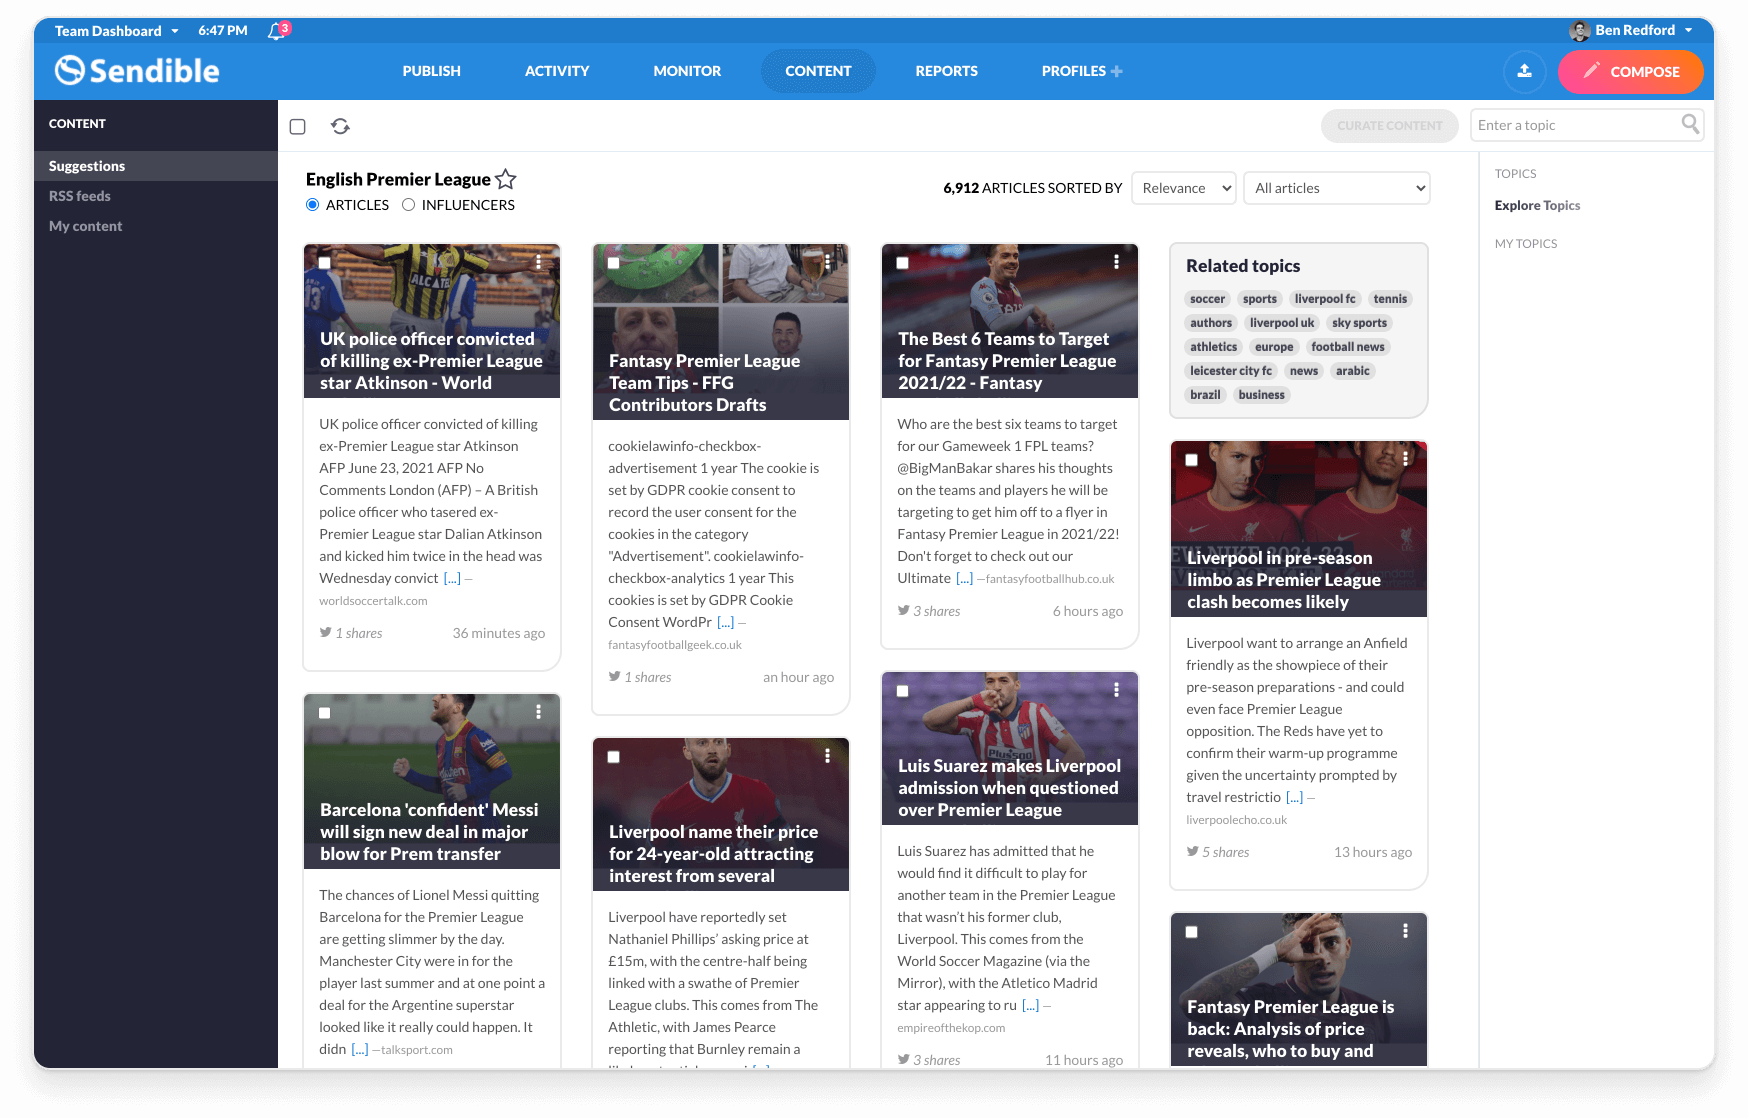 Relevant content suggestions